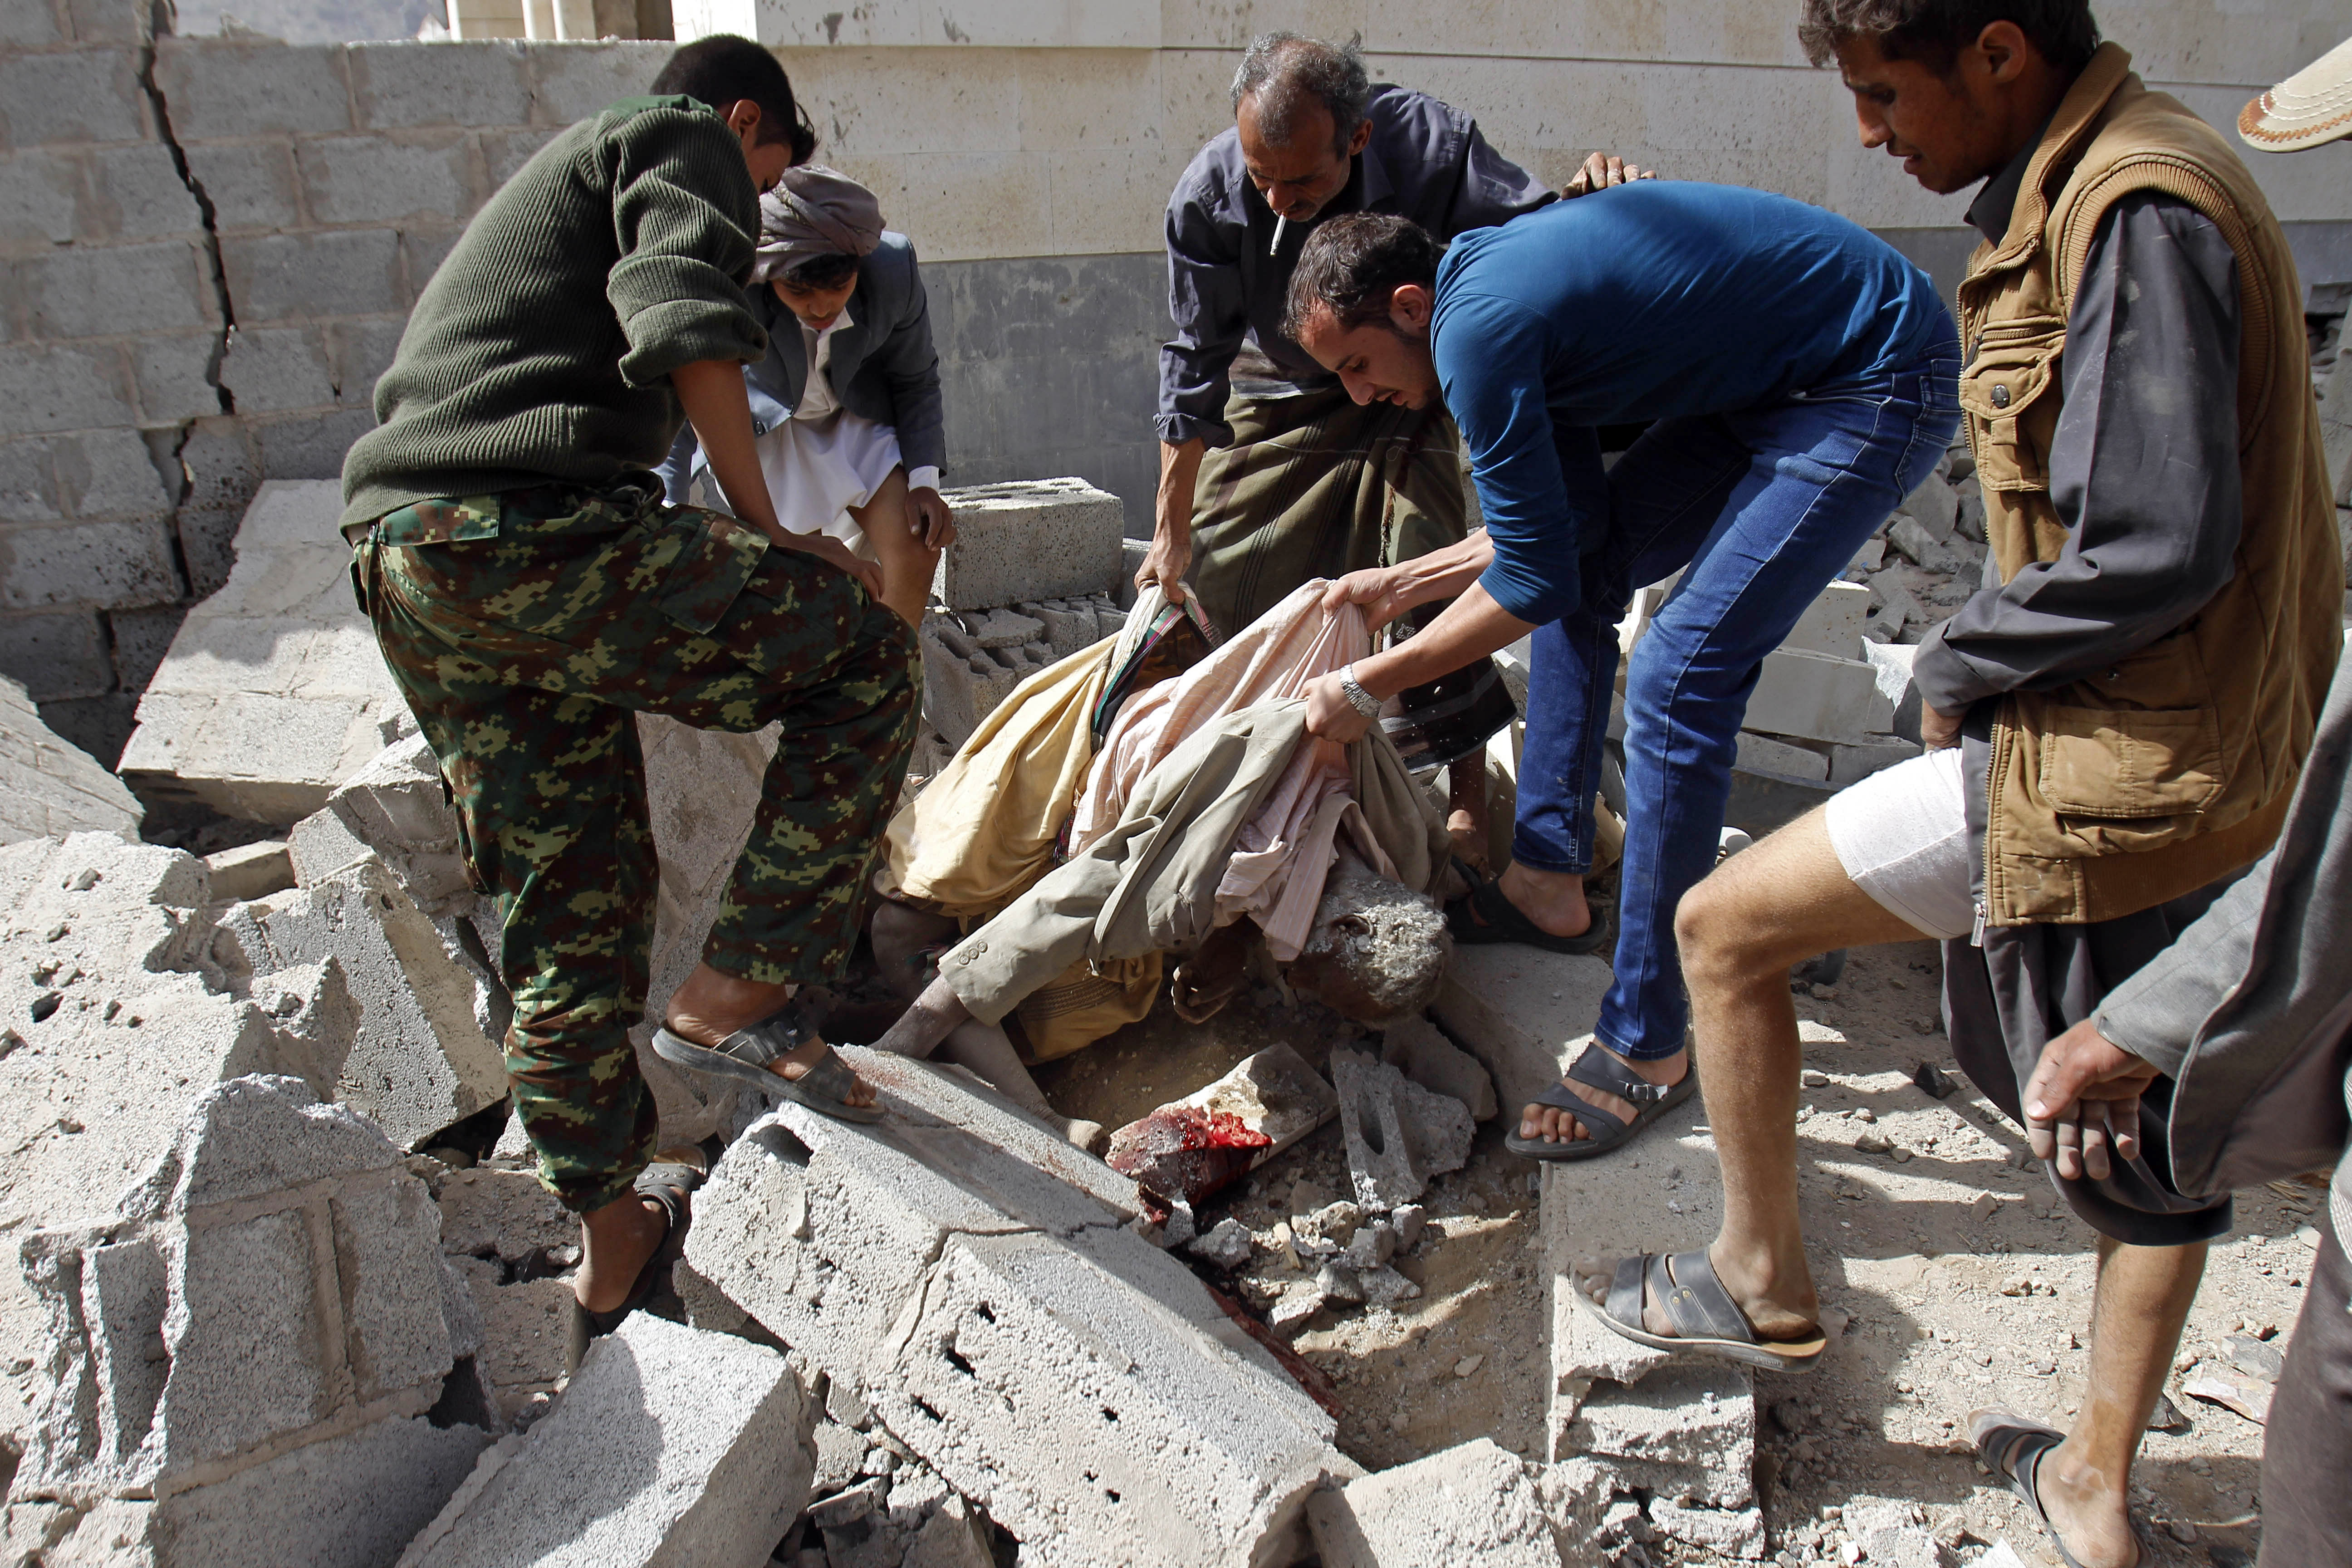 People carry the body of a man killed in a Saudi-led airstrike against Iran-allied Shiite rebels, known as Houthis, that hit a site of a weapons cache in Yemen's capital, Sanaa, Monday, April 20, 2015. The strikes on Yemen's rebel-held capital on Monday caused massive explosions that shattered windows, sent residents scrambling for shelter and killed a local TV presenter. (AP Photo/Hani Mohammed)